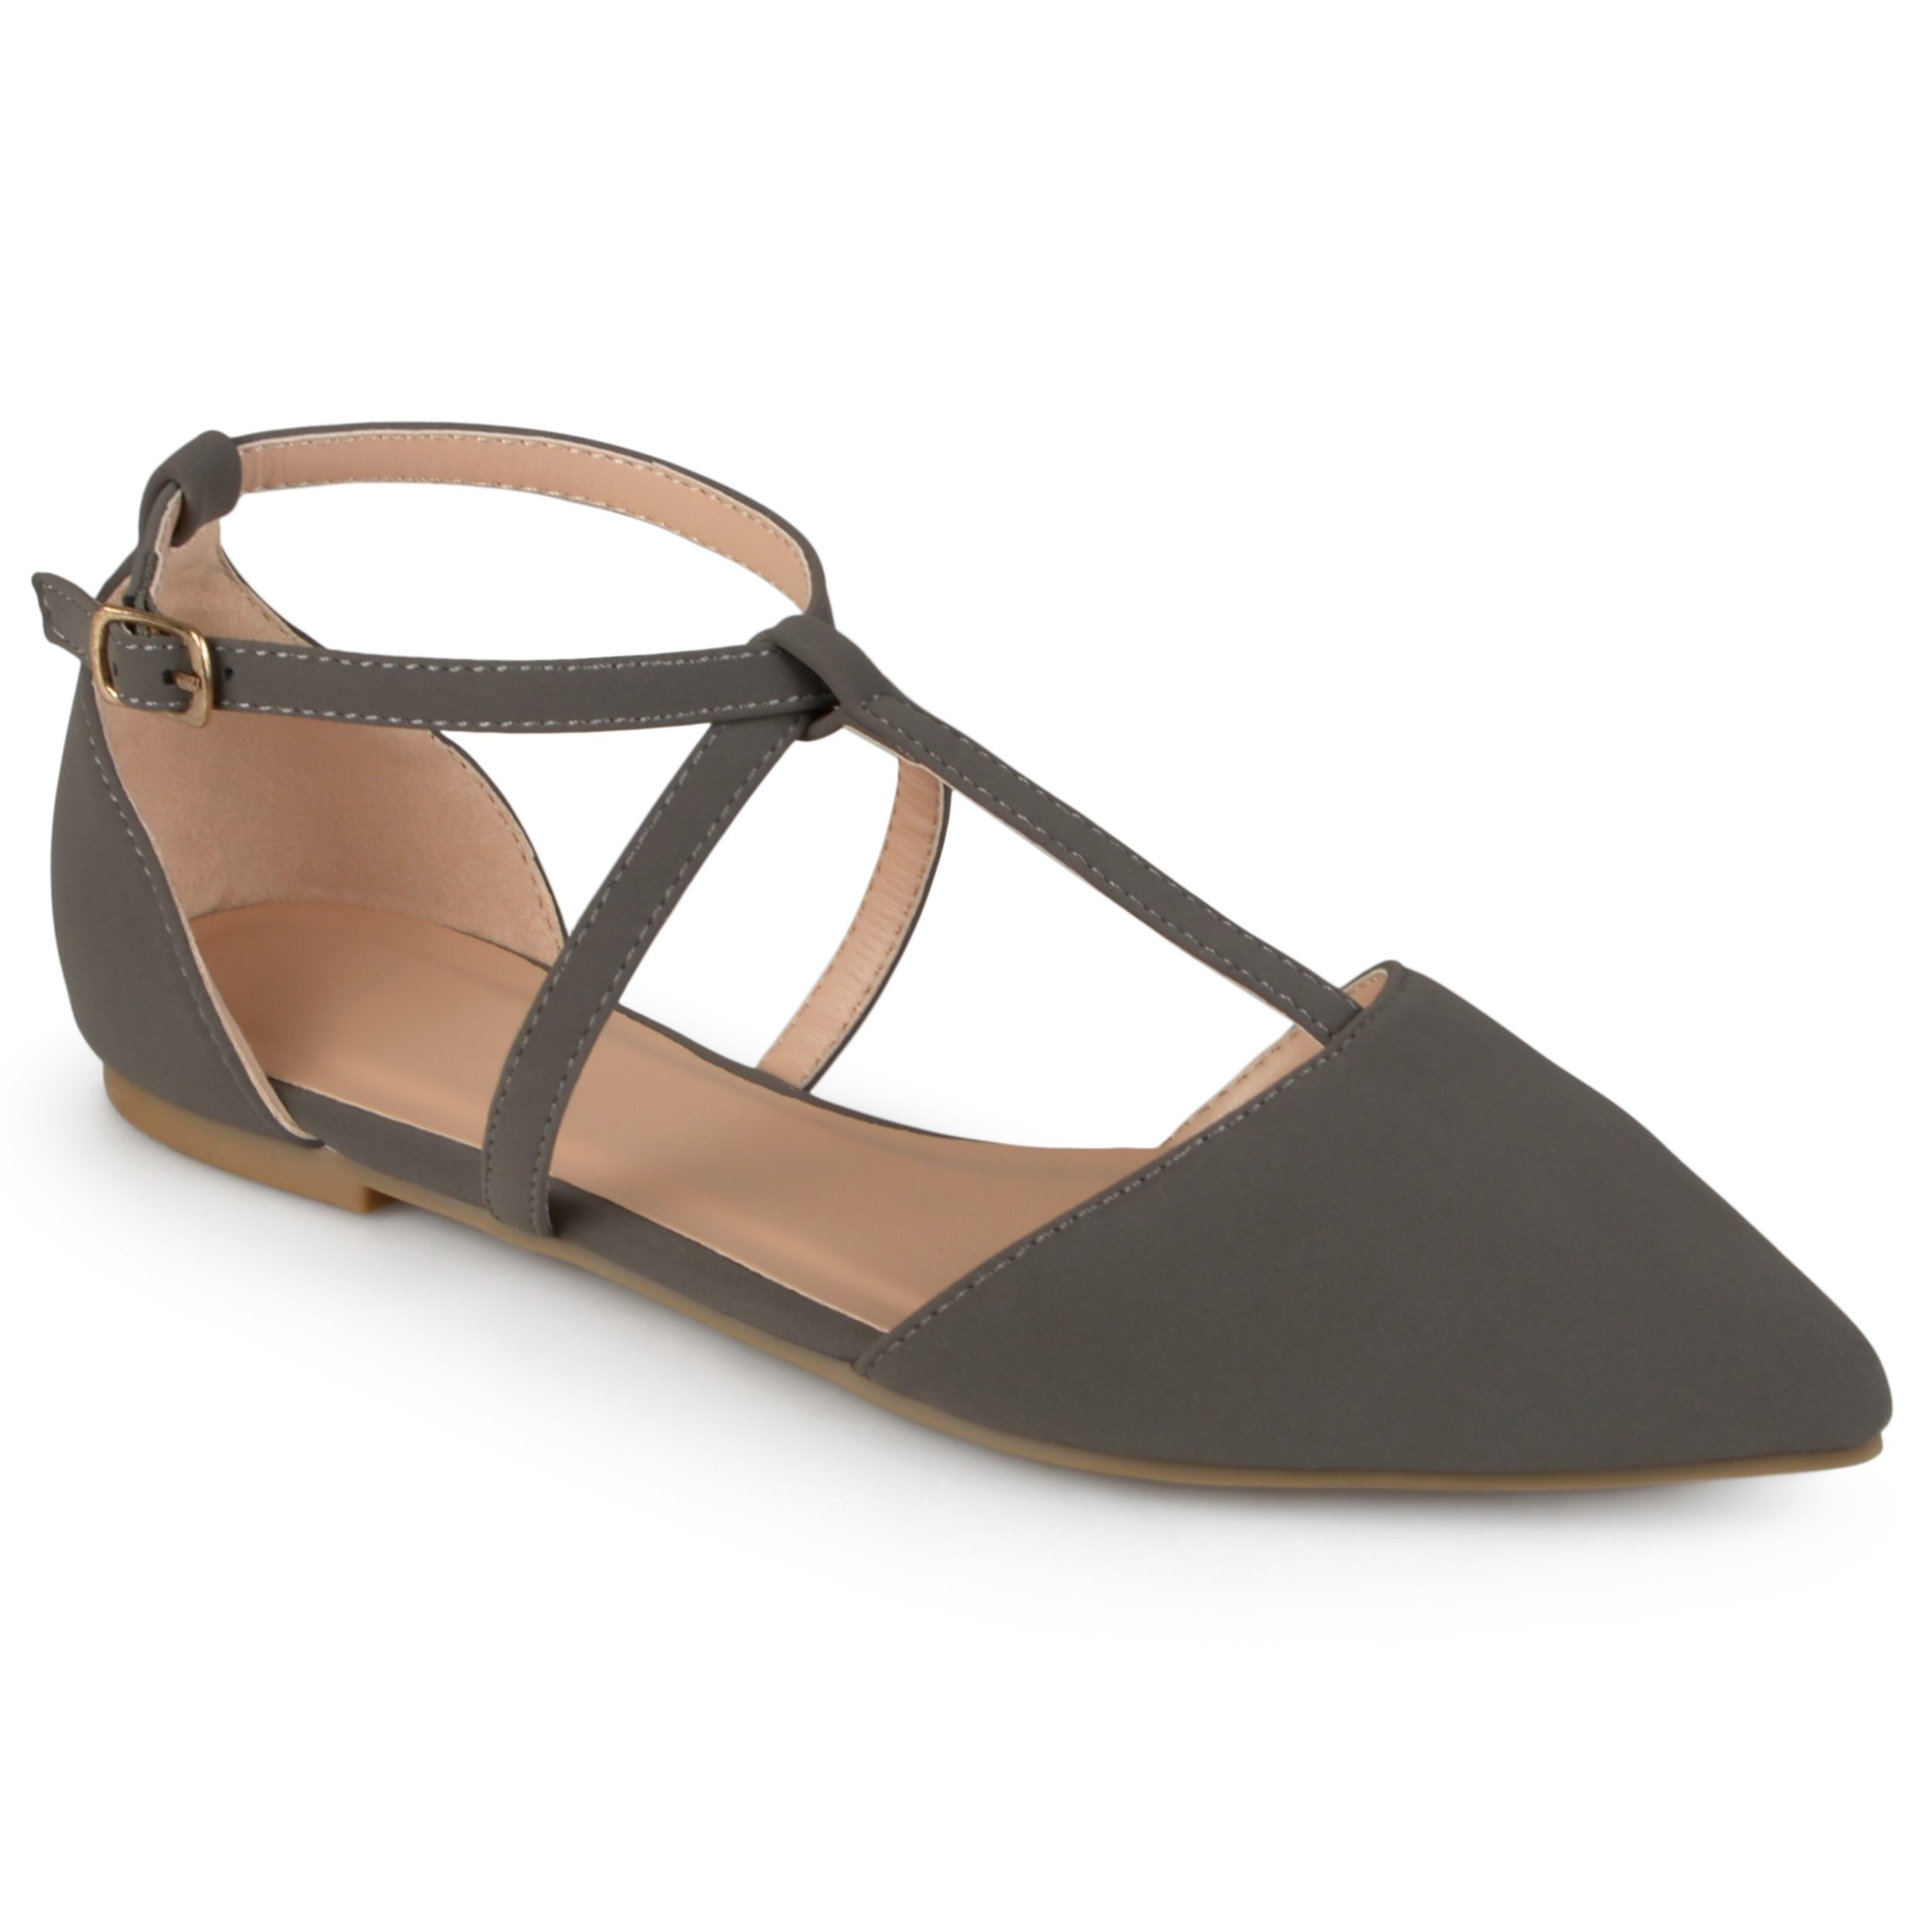 Journee Collection Womens Pointed Toe Ankle Wrap T-Strap D'Orsay Flats Grey, 11 Regular US